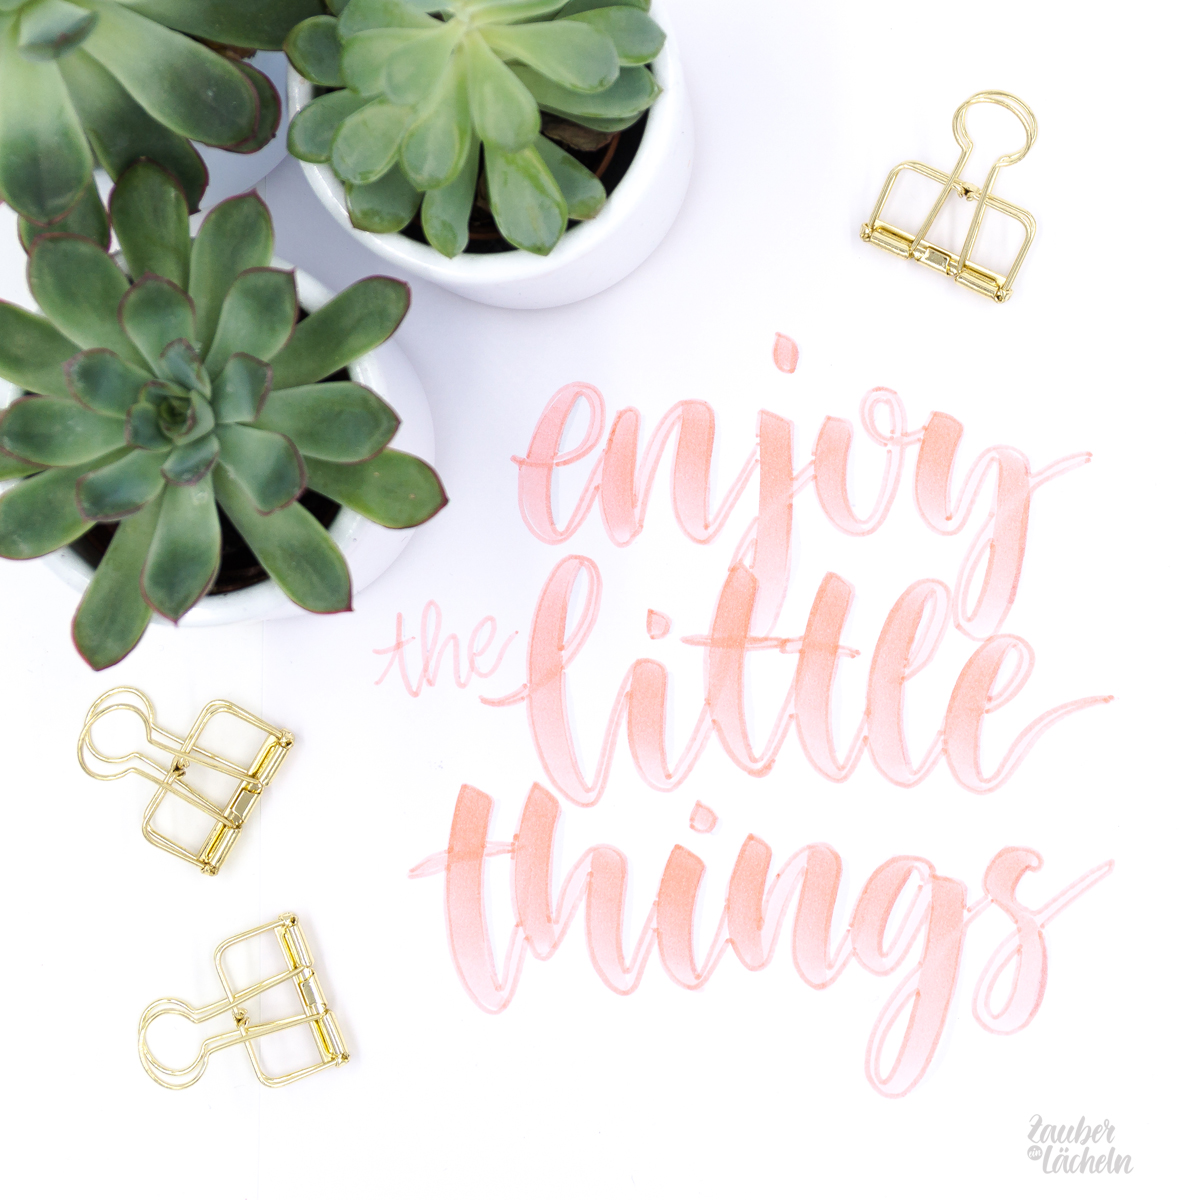 Brush Lettering Beispiel - Enjoy the little things